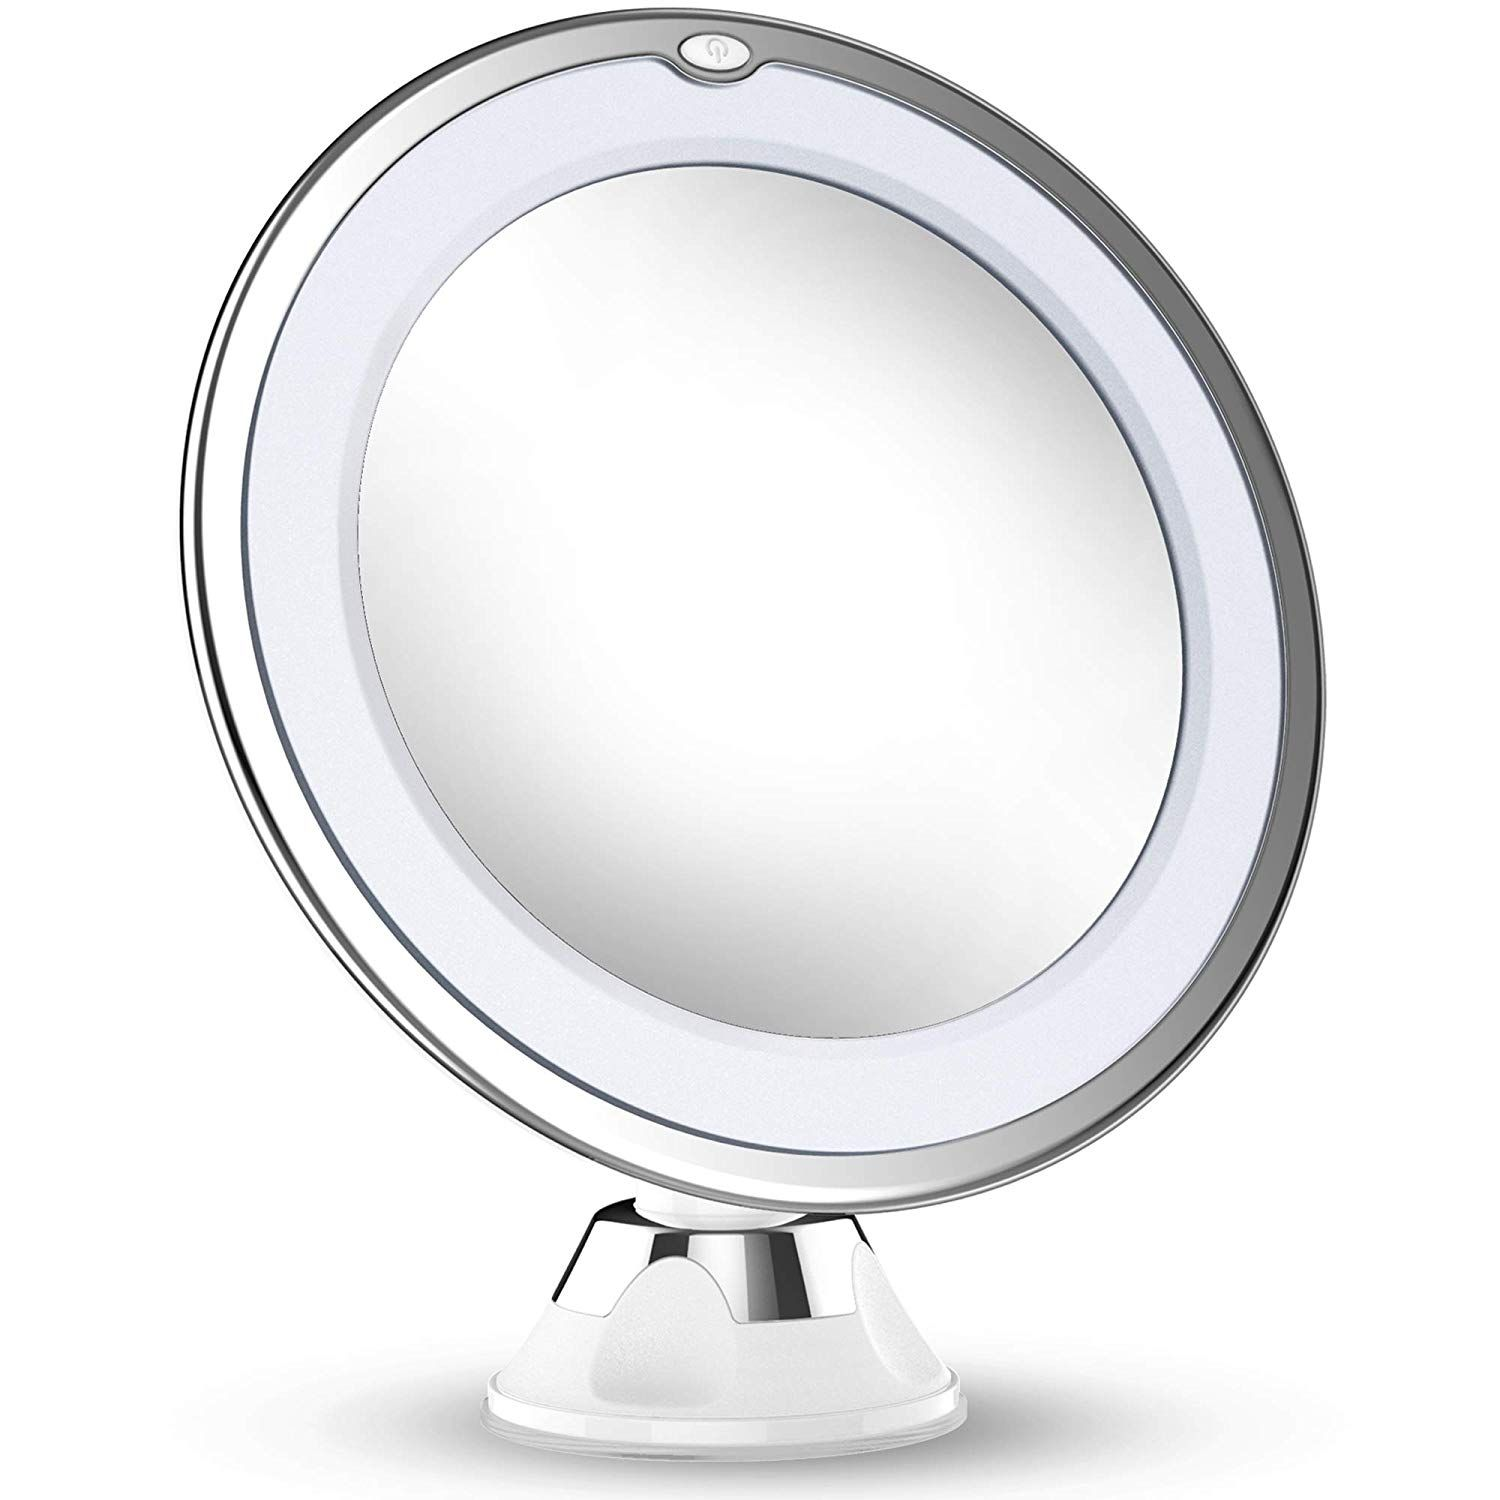 Updated 2019 Version 10x Magnifying Makeup Mirror With Lights Led Lighted Portabl Makeup Vanity Mirror With Lights Makeup Mirror With Lights Led Makeup Mirror